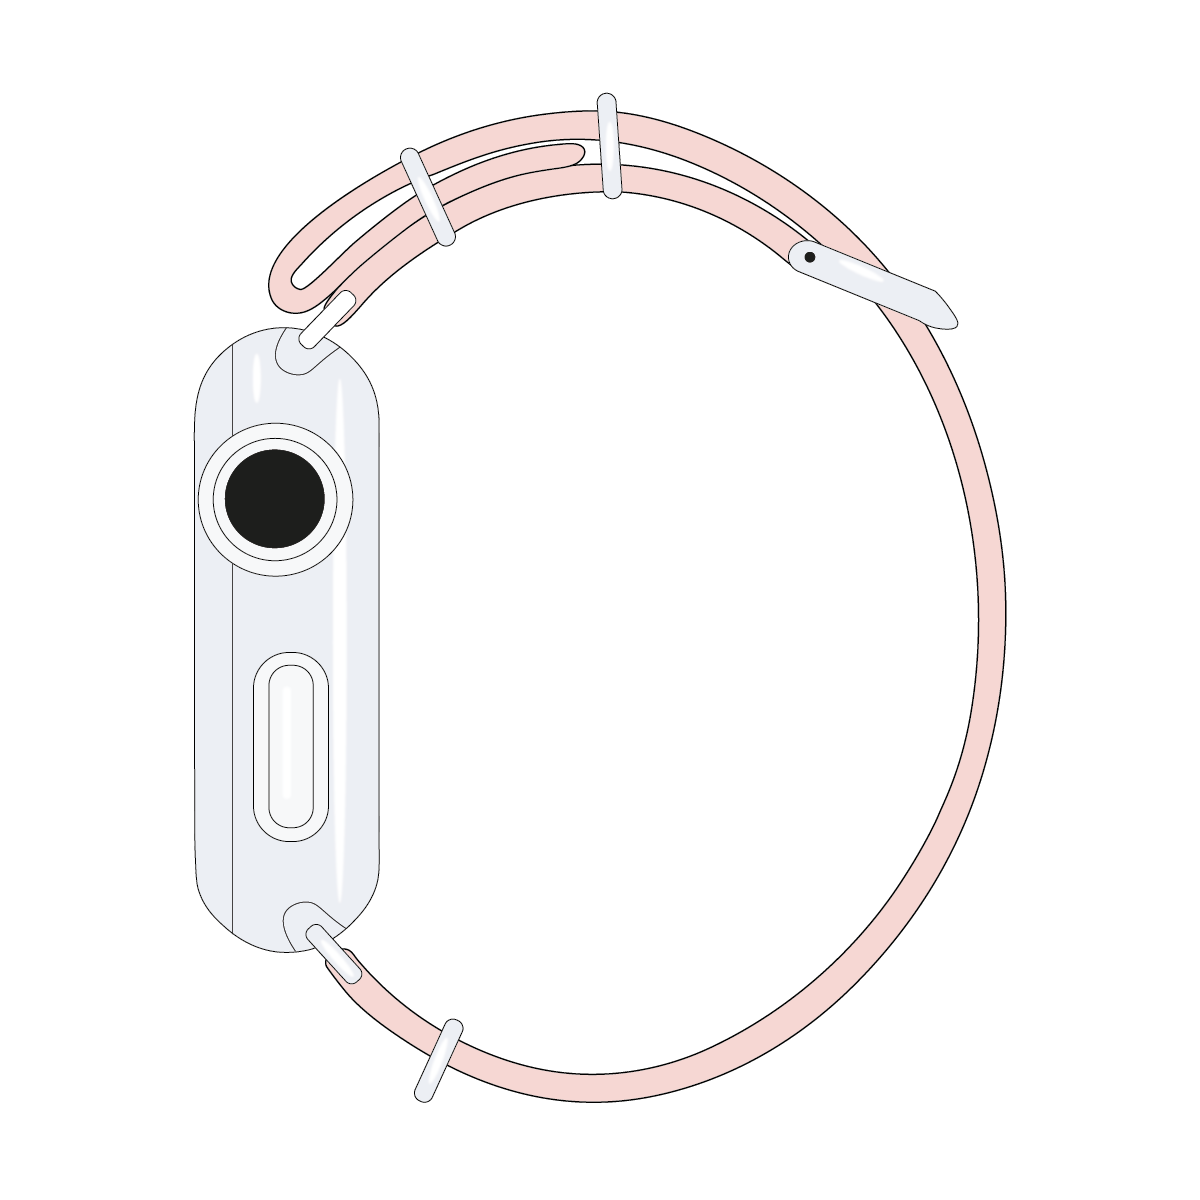 Correa para Apple Watch de nailon NATO en rosa claro | Roobaya – Bild 4